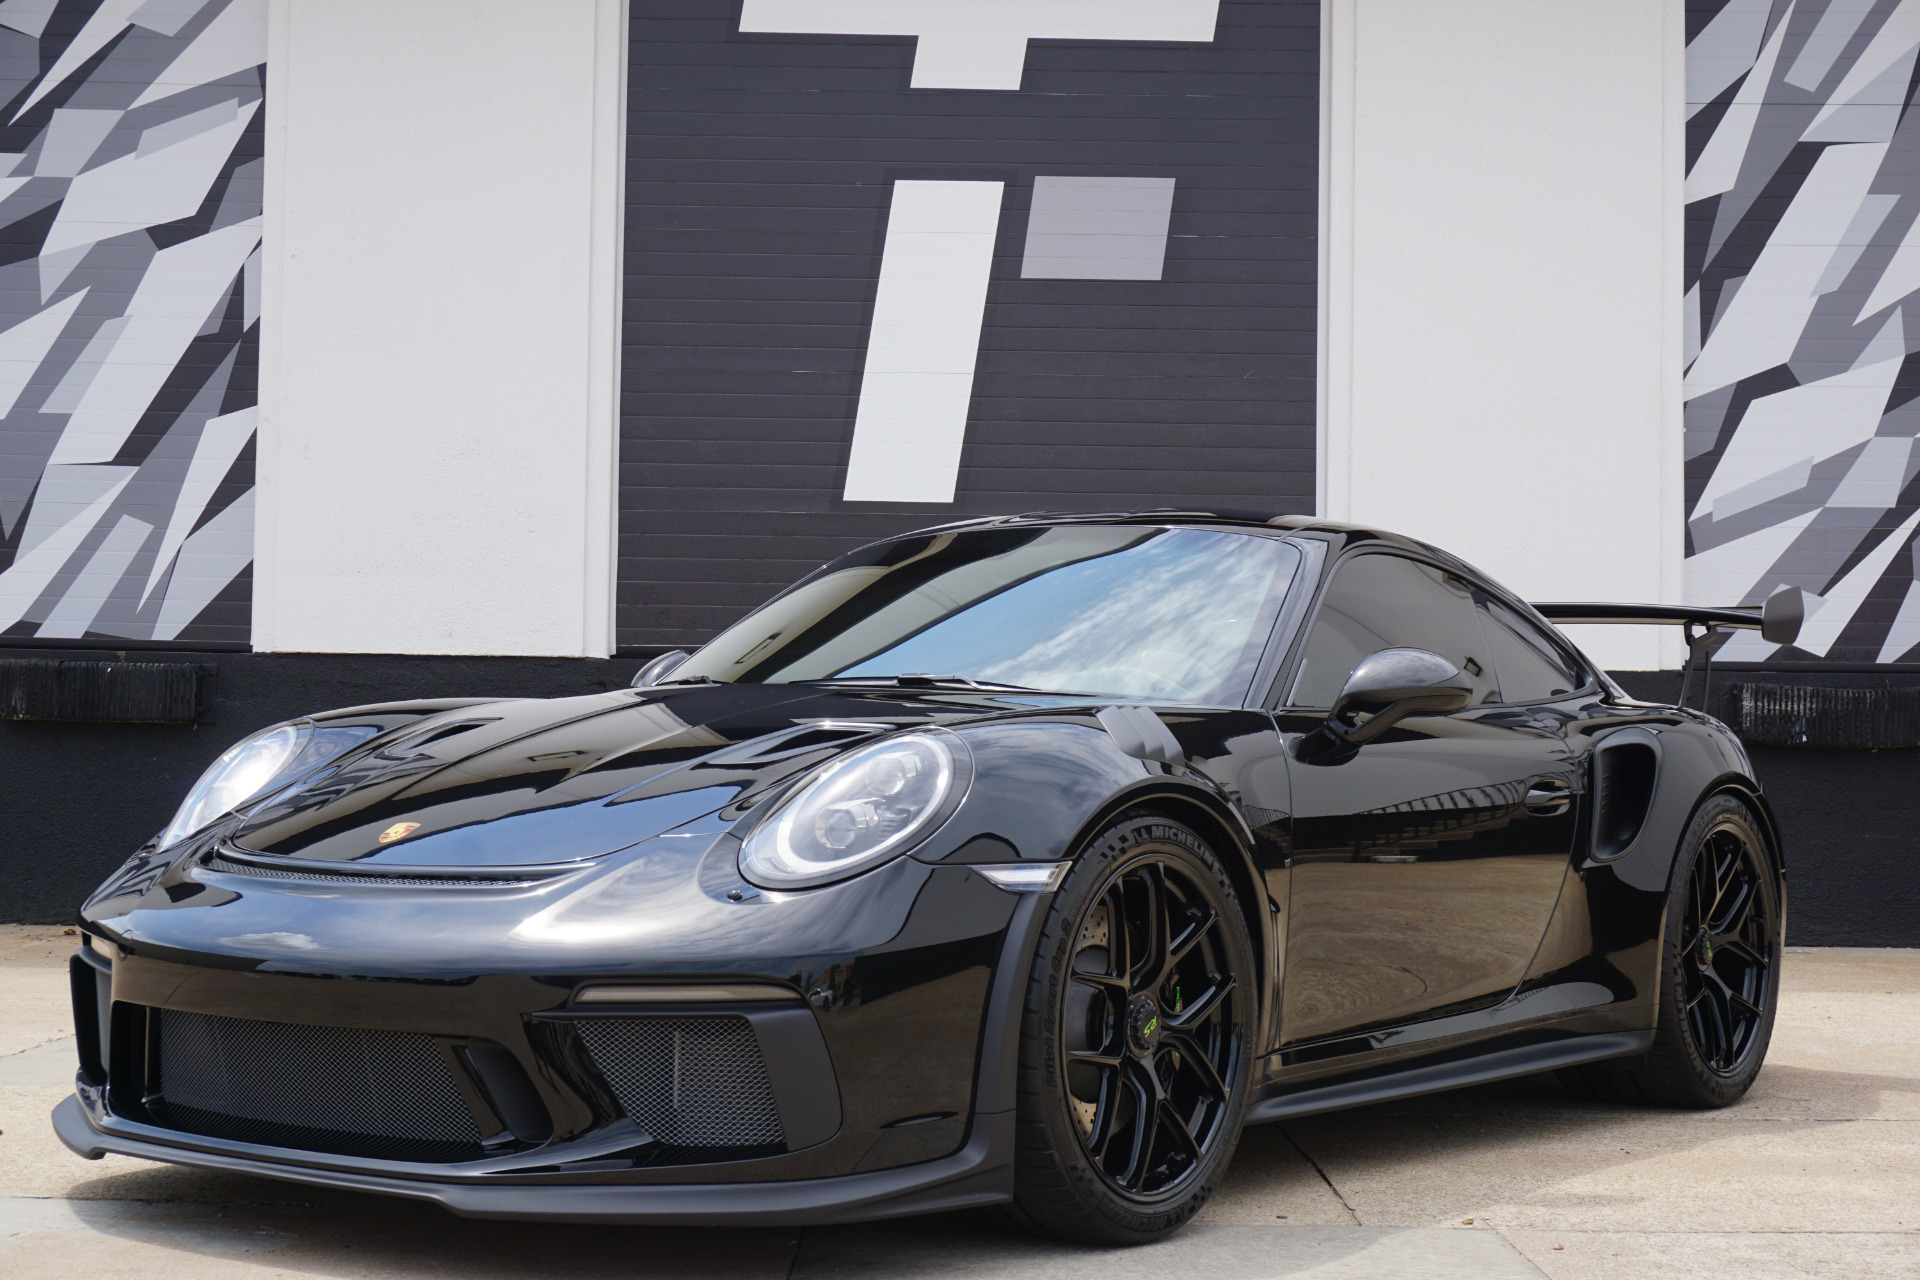 Used 2019 Porsche 911 Gt3 Rs For Sale 215900 Tactical